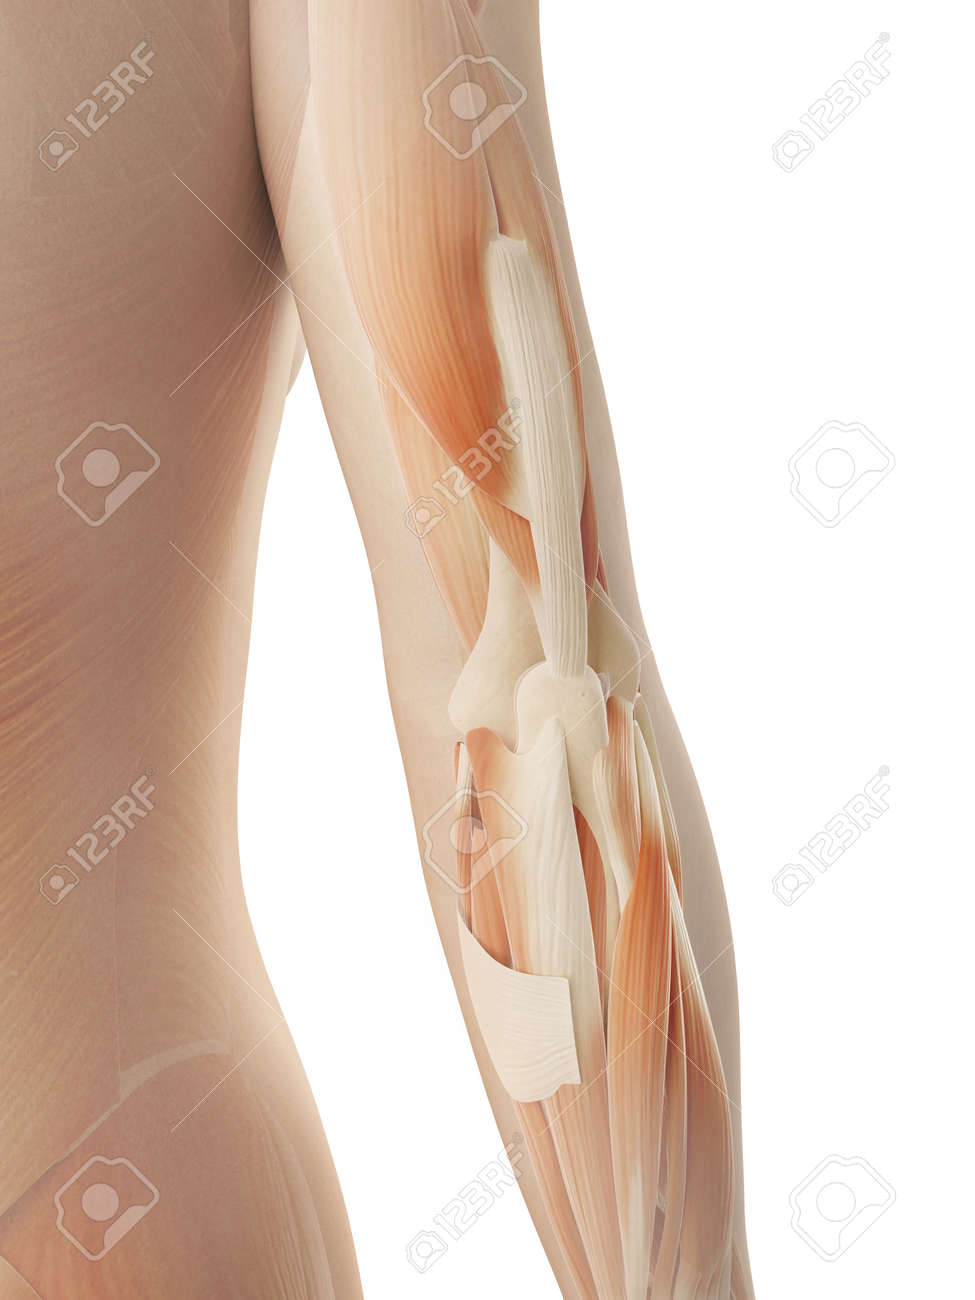 Female Arm Muscles Stock Photo, Picture And Royalty Free Image ...